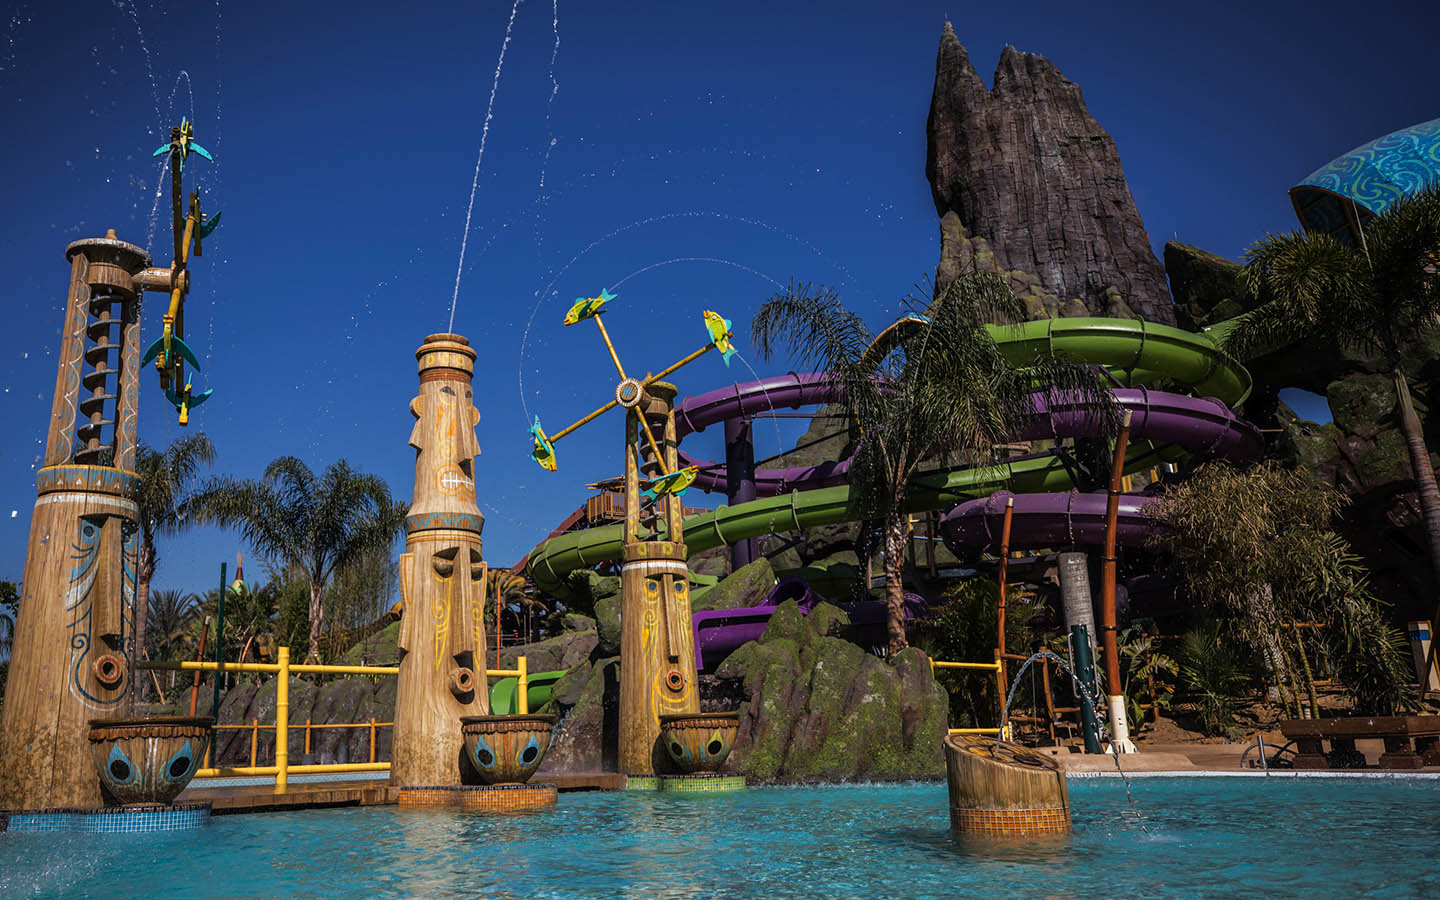 Volcano Bay special effects